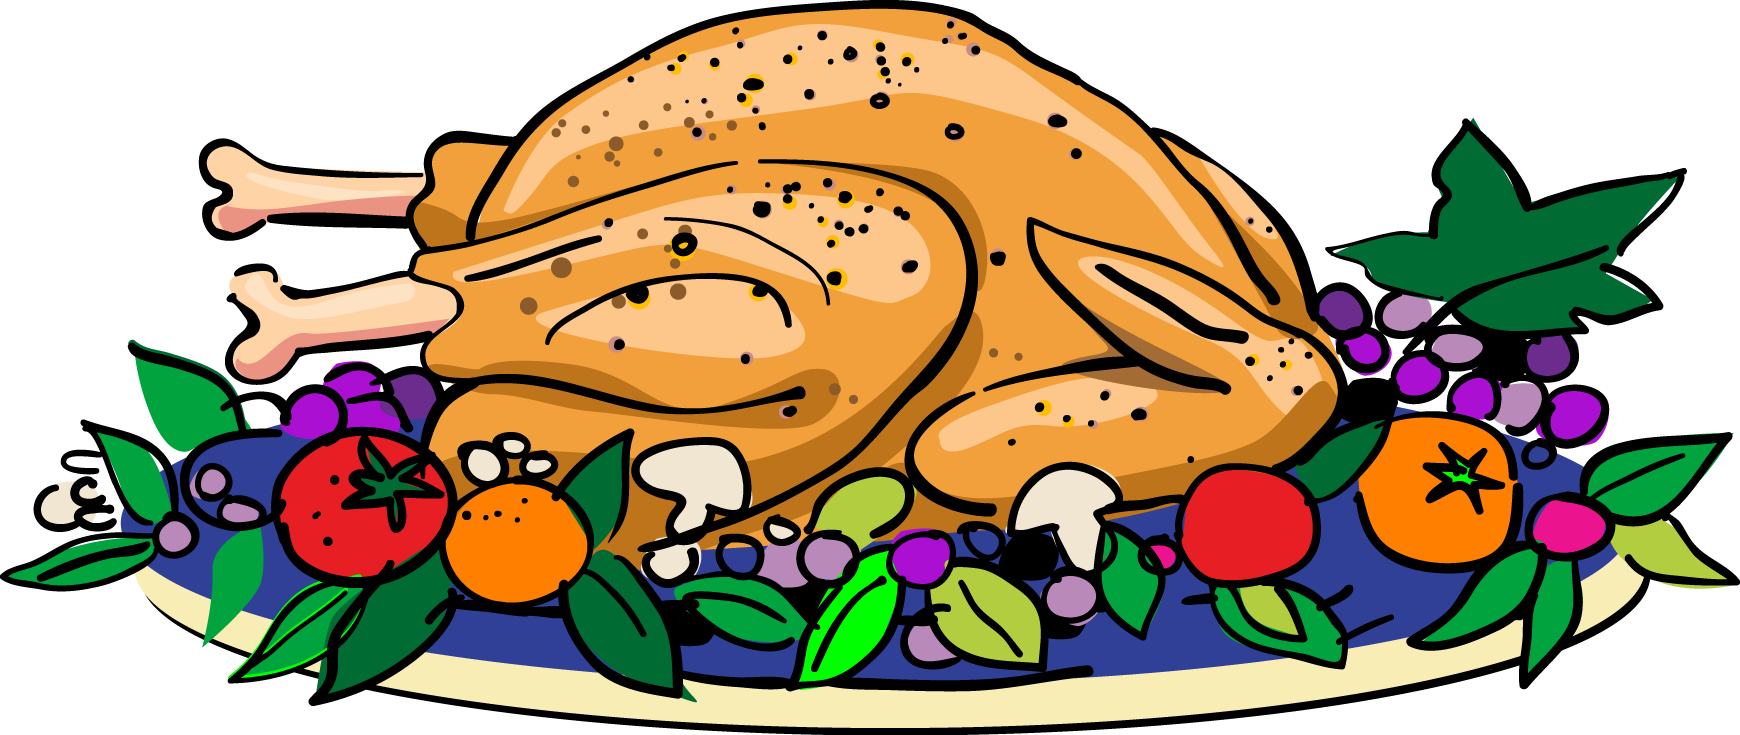 28+ Collection of Turkey Clipart Food | High quality, free cliparts ... transparent